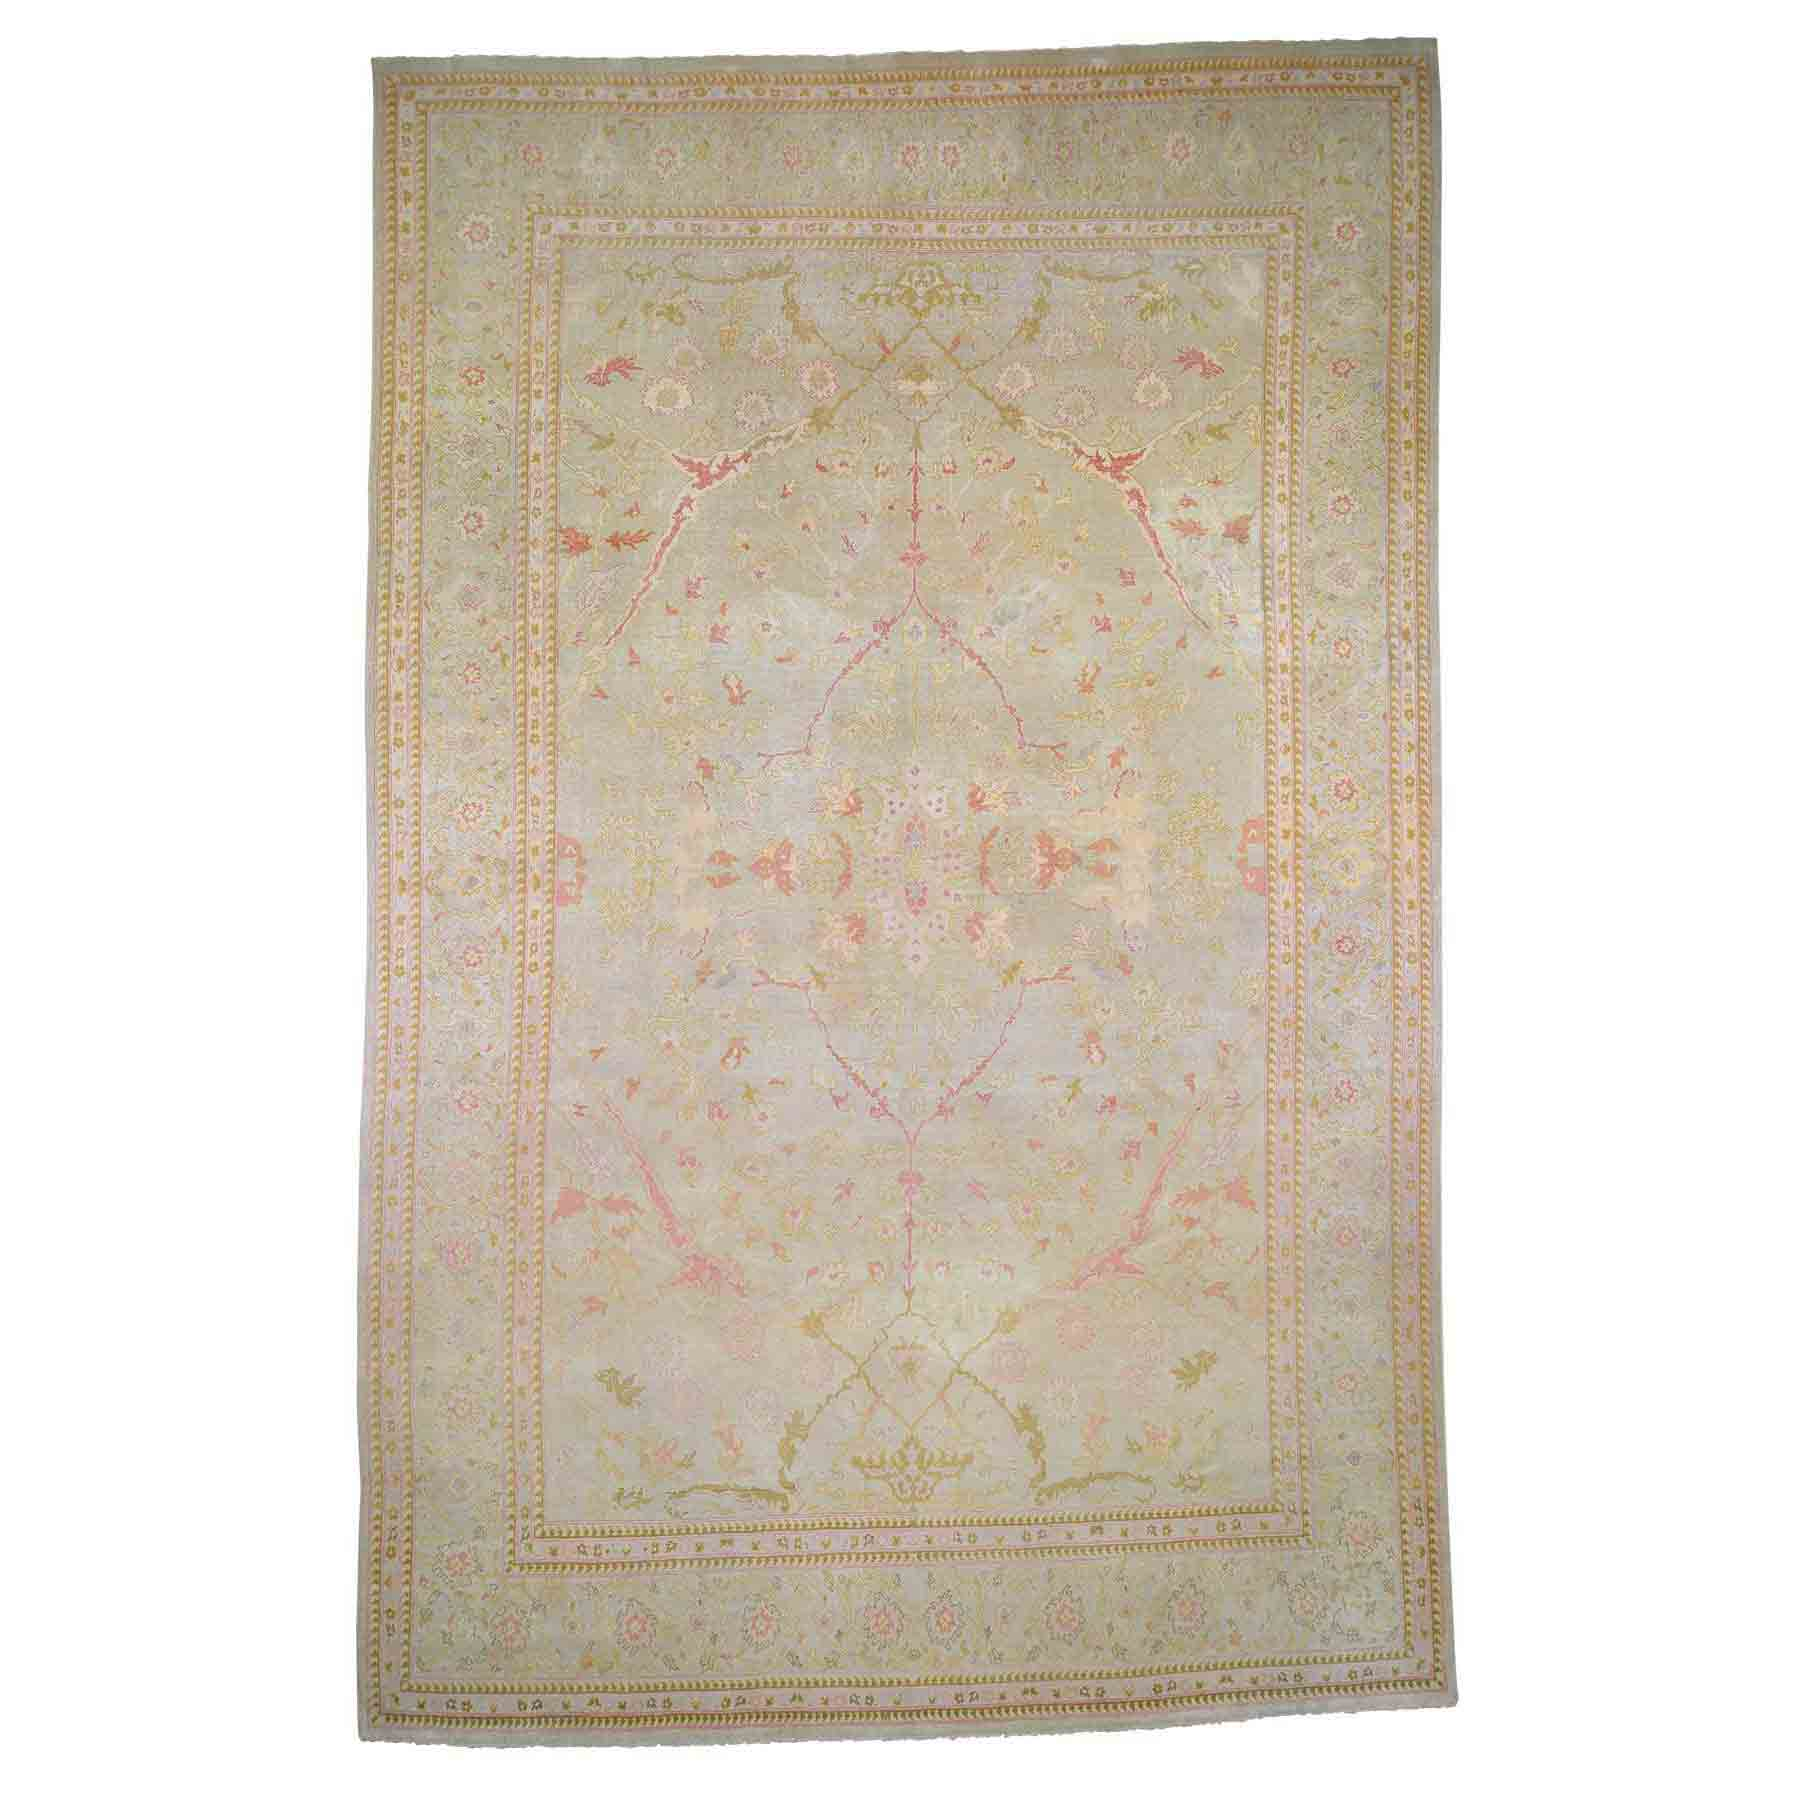 Antique-Hand-Knotted-Rug-230135